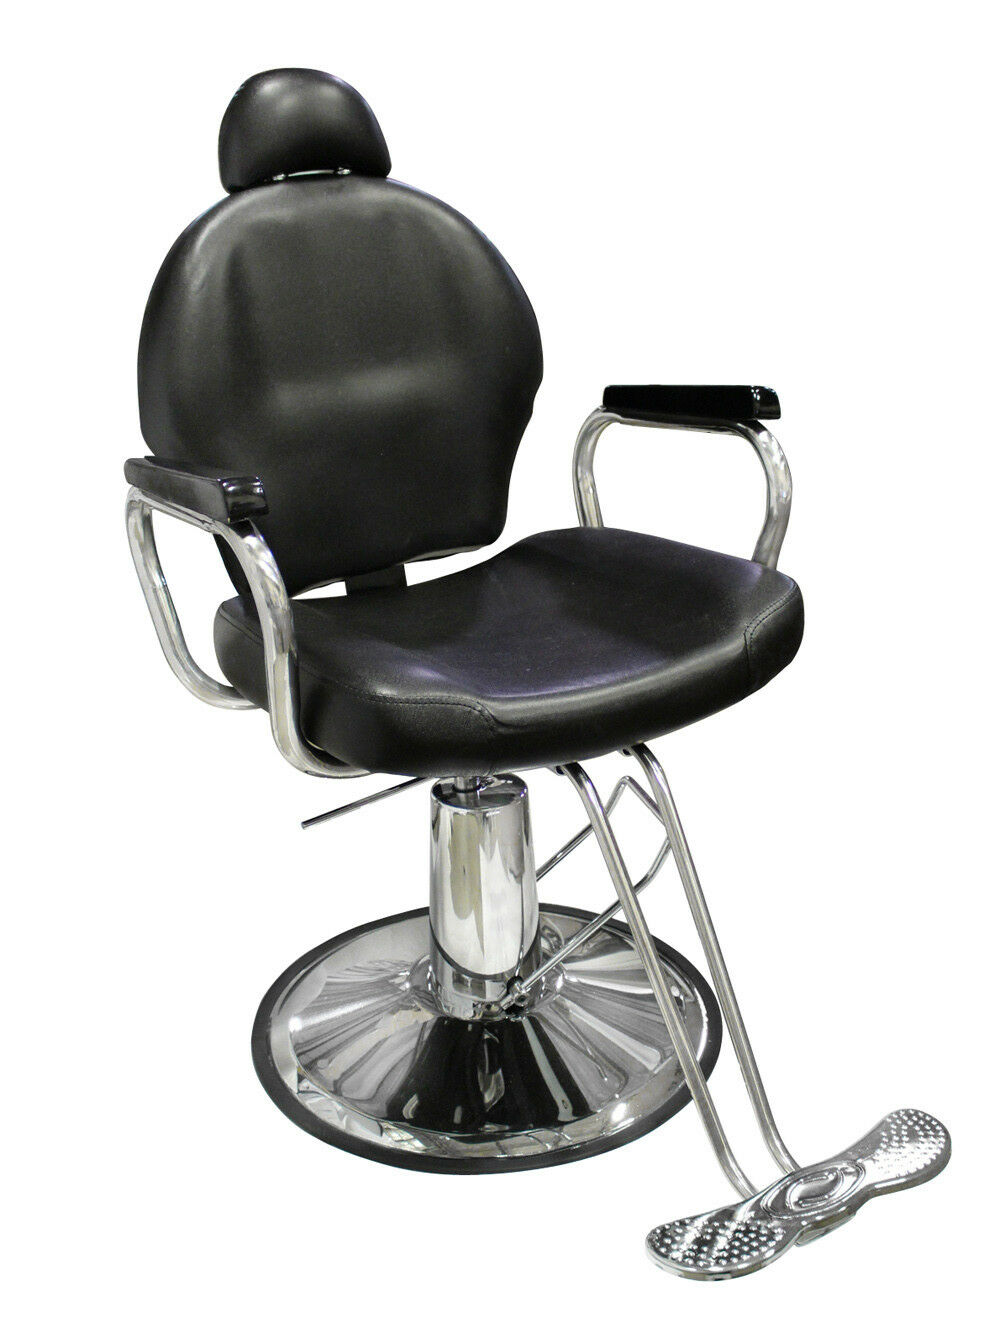 New Reclining Hydraulic Barber Chair Salon Styling Beauty Spa Sh&oo Equipment  sc 1 st  eBay & New Reclining Hydraulic Barber Chair Salon Styling Beauty Spa ... islam-shia.org